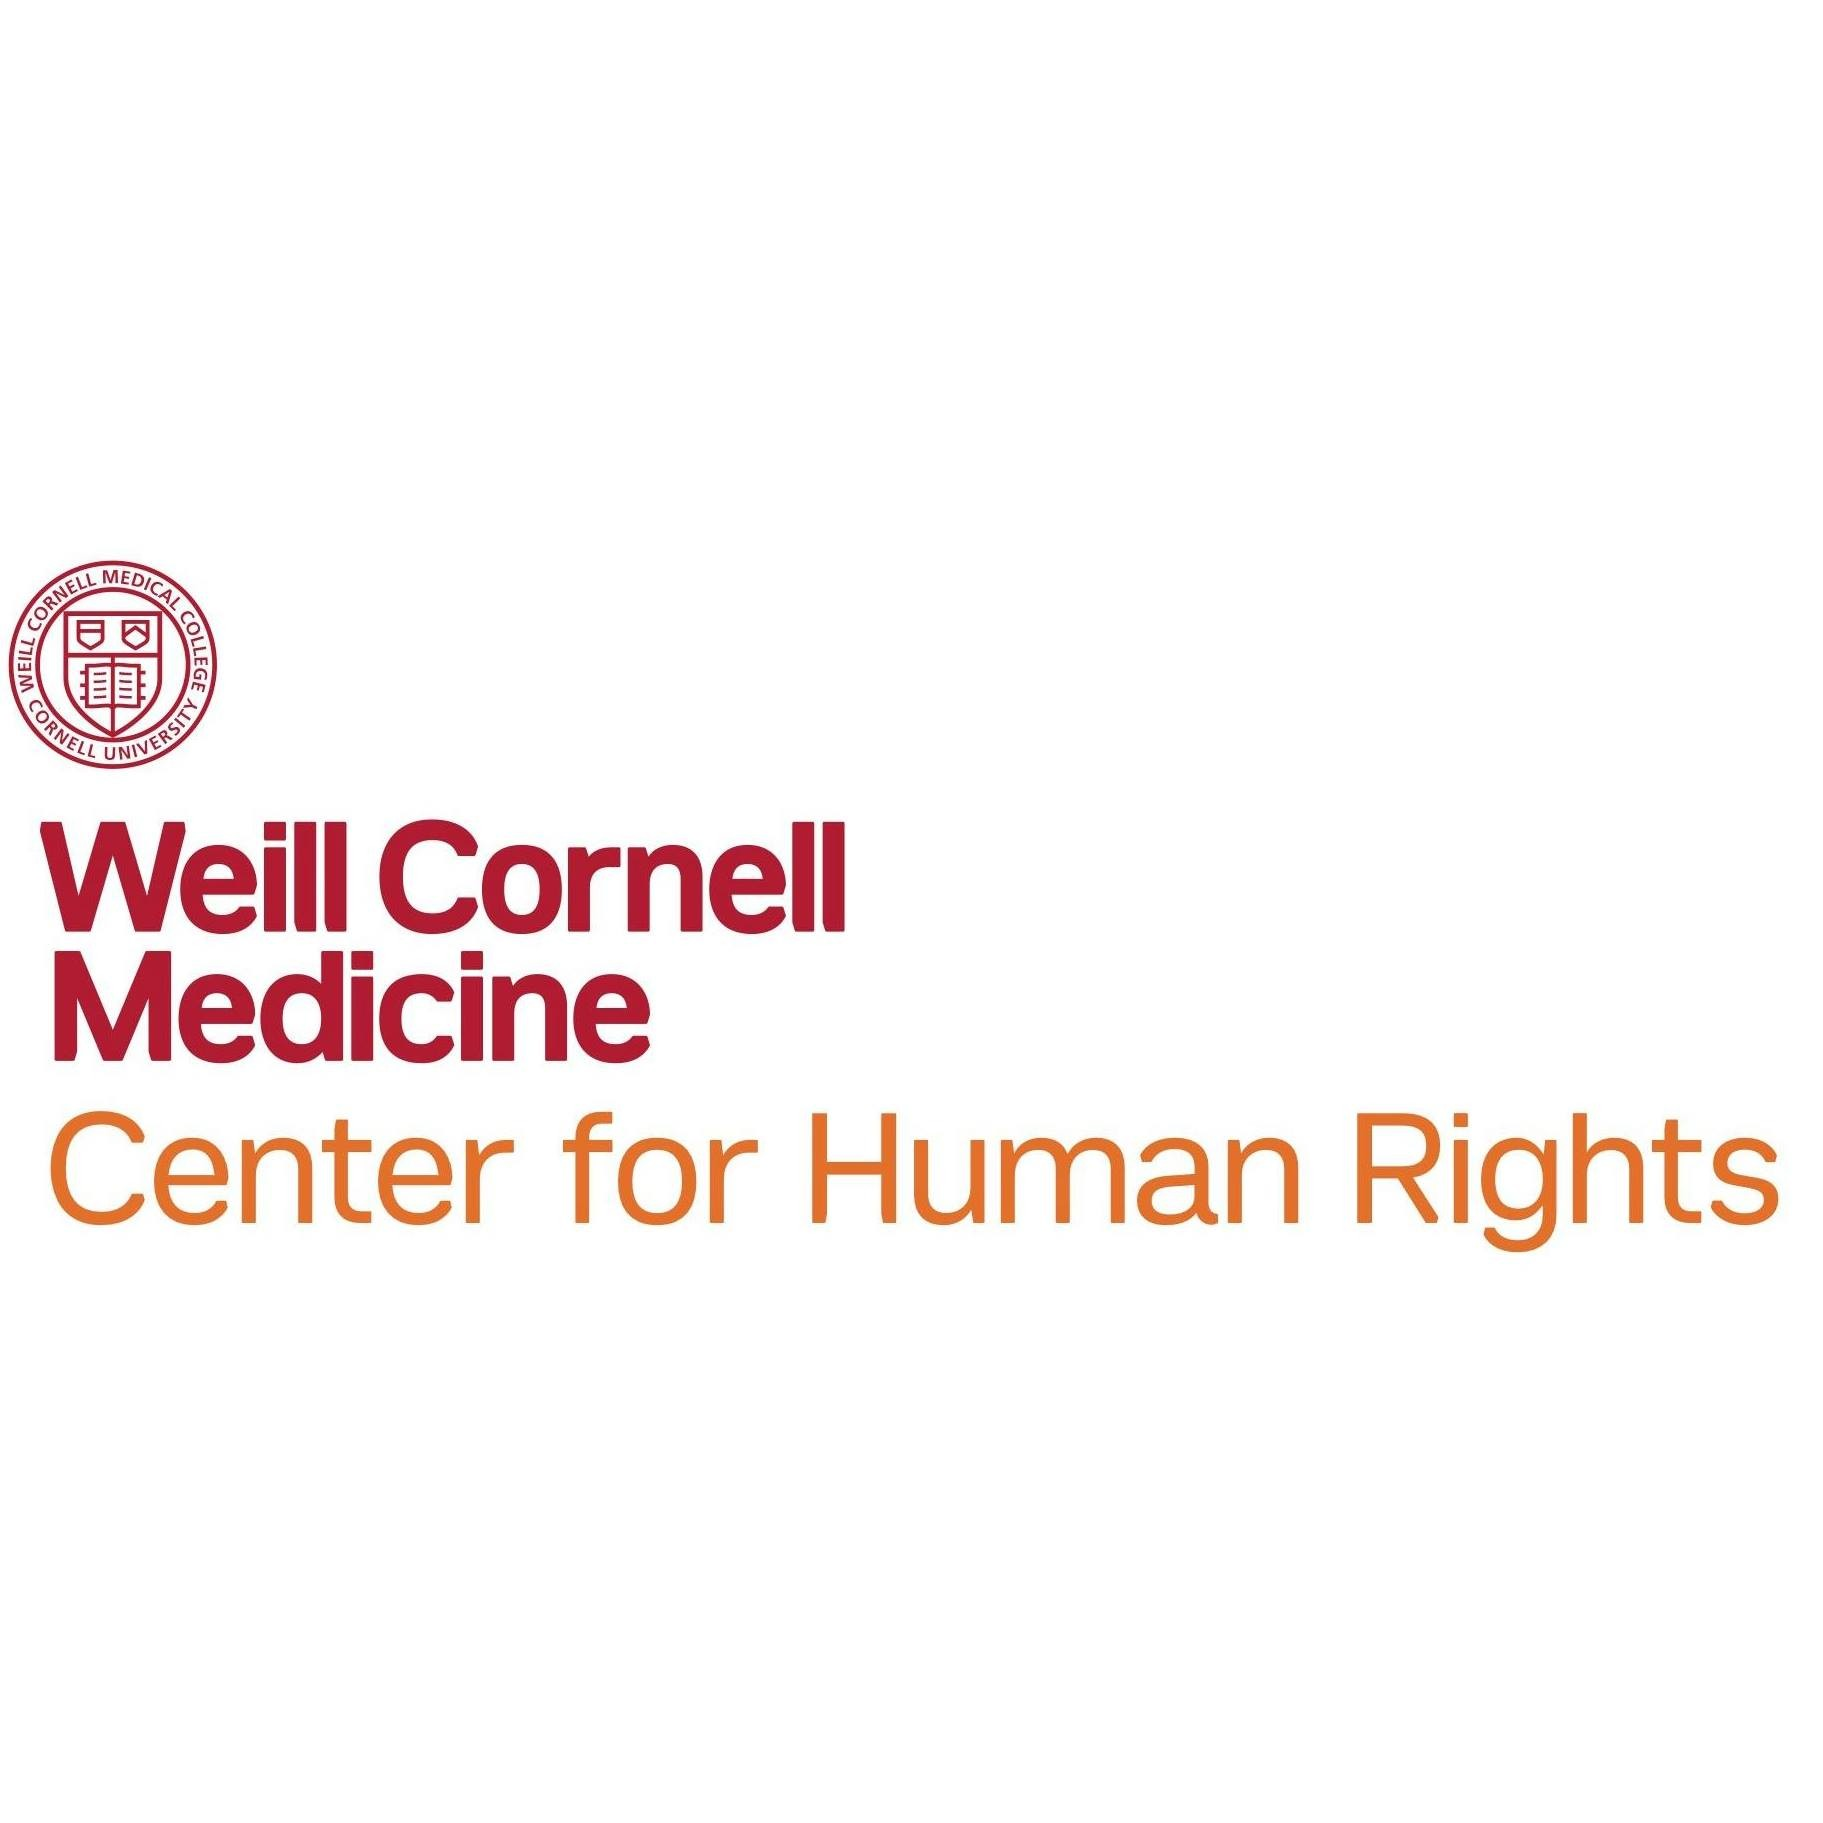 Weill Cornell Medicine Center for Human Rights logo